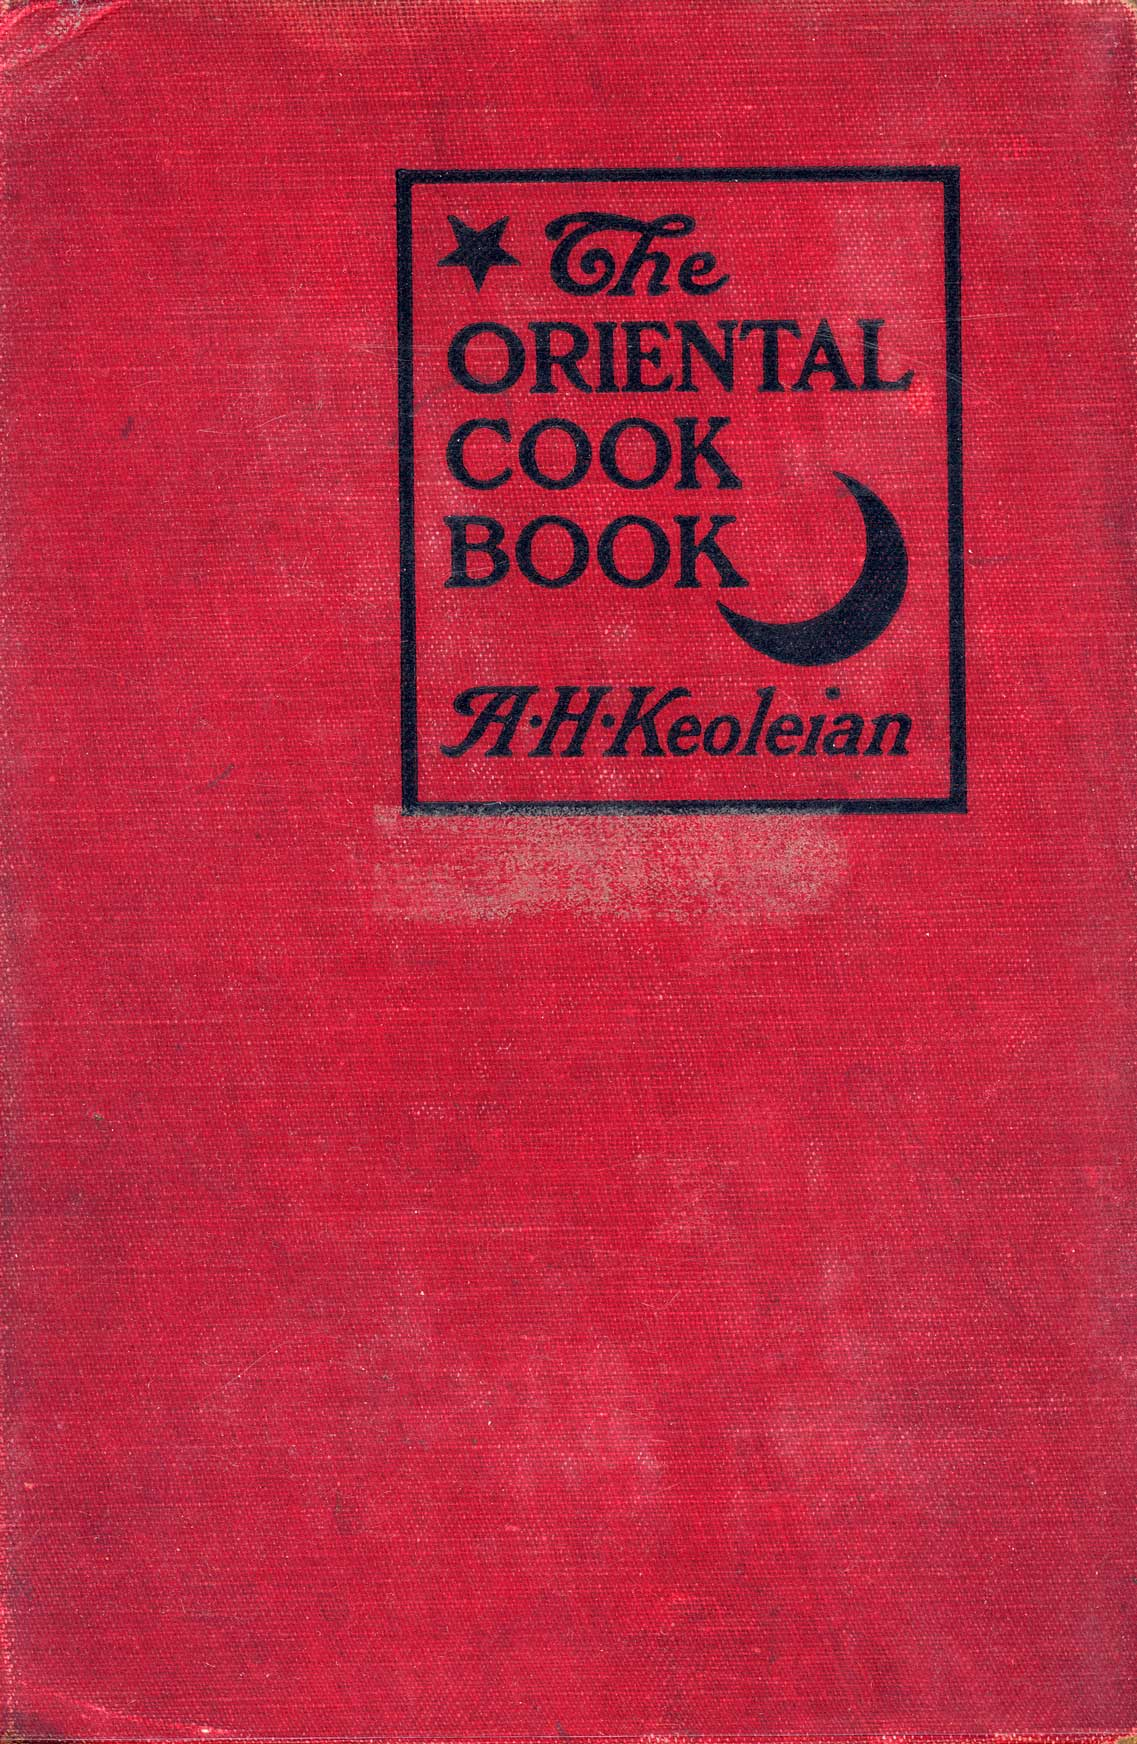 The oriental cook book : wholesome, dainty and economical dishes of the Orient, especially adapted to American tastes and methods of preparation